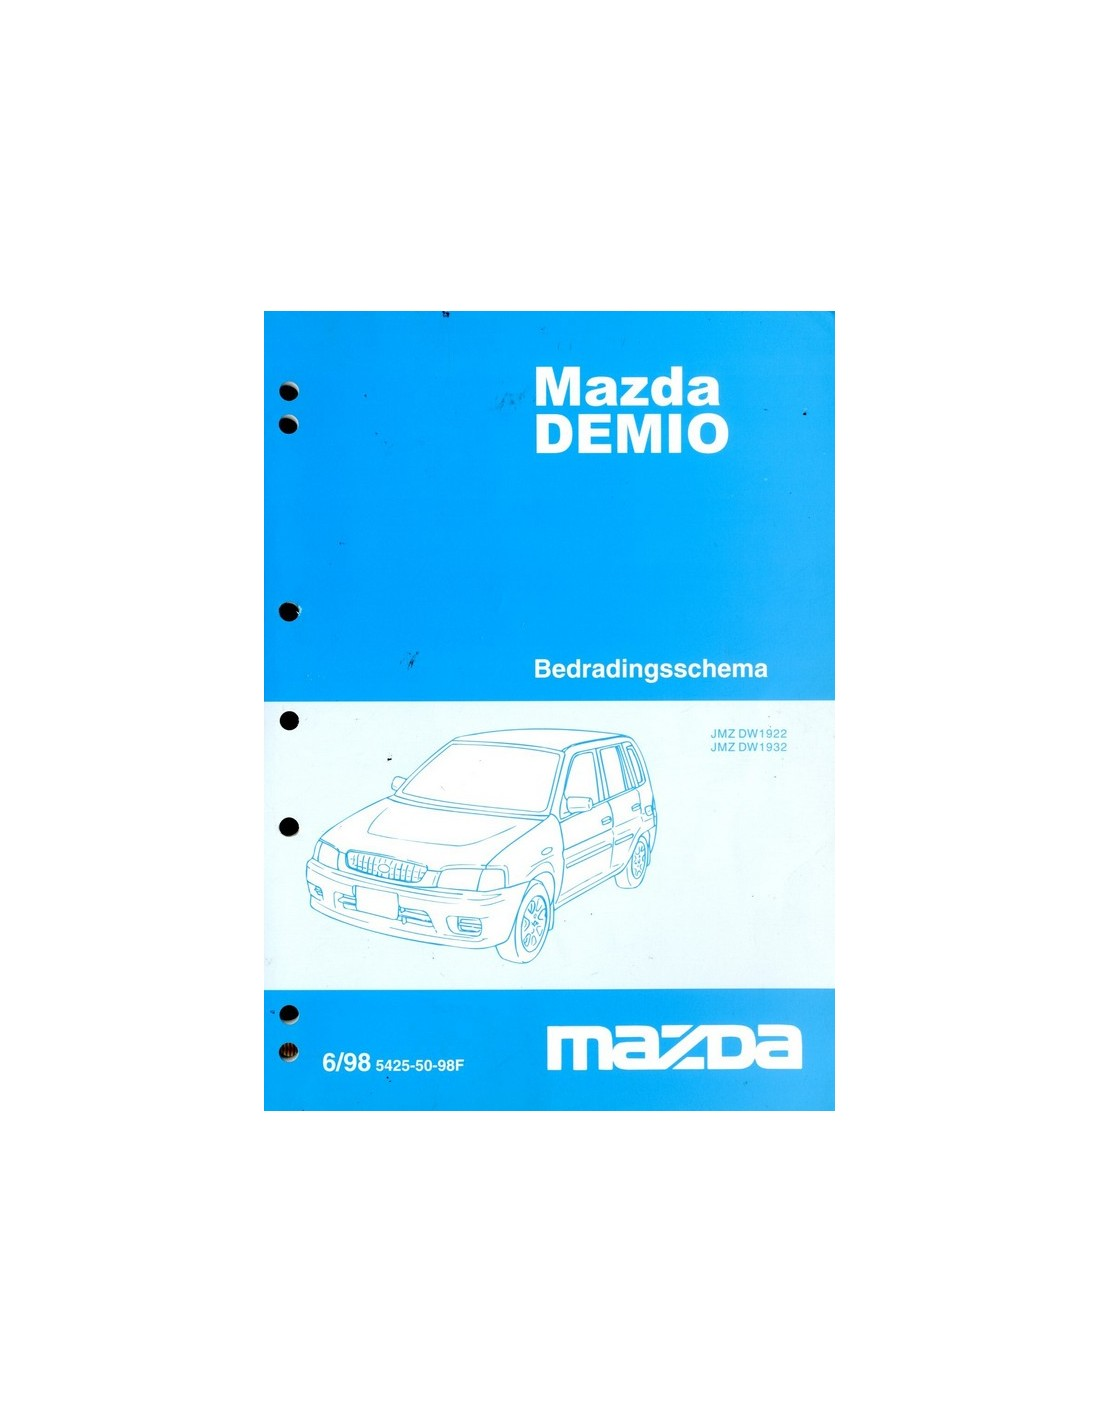 Renault Laguna Ii Repair Manual 2001 further Renault Laguna Ii Repair Manual 2001 further Saab 9000 Wiring Diagram likewise 2003 Ford Ranger Battery Junction Fuse Box Diagram also Saab 9000 Stereo Wiring Diagram. on 1997 saab 900 amplifier wiring